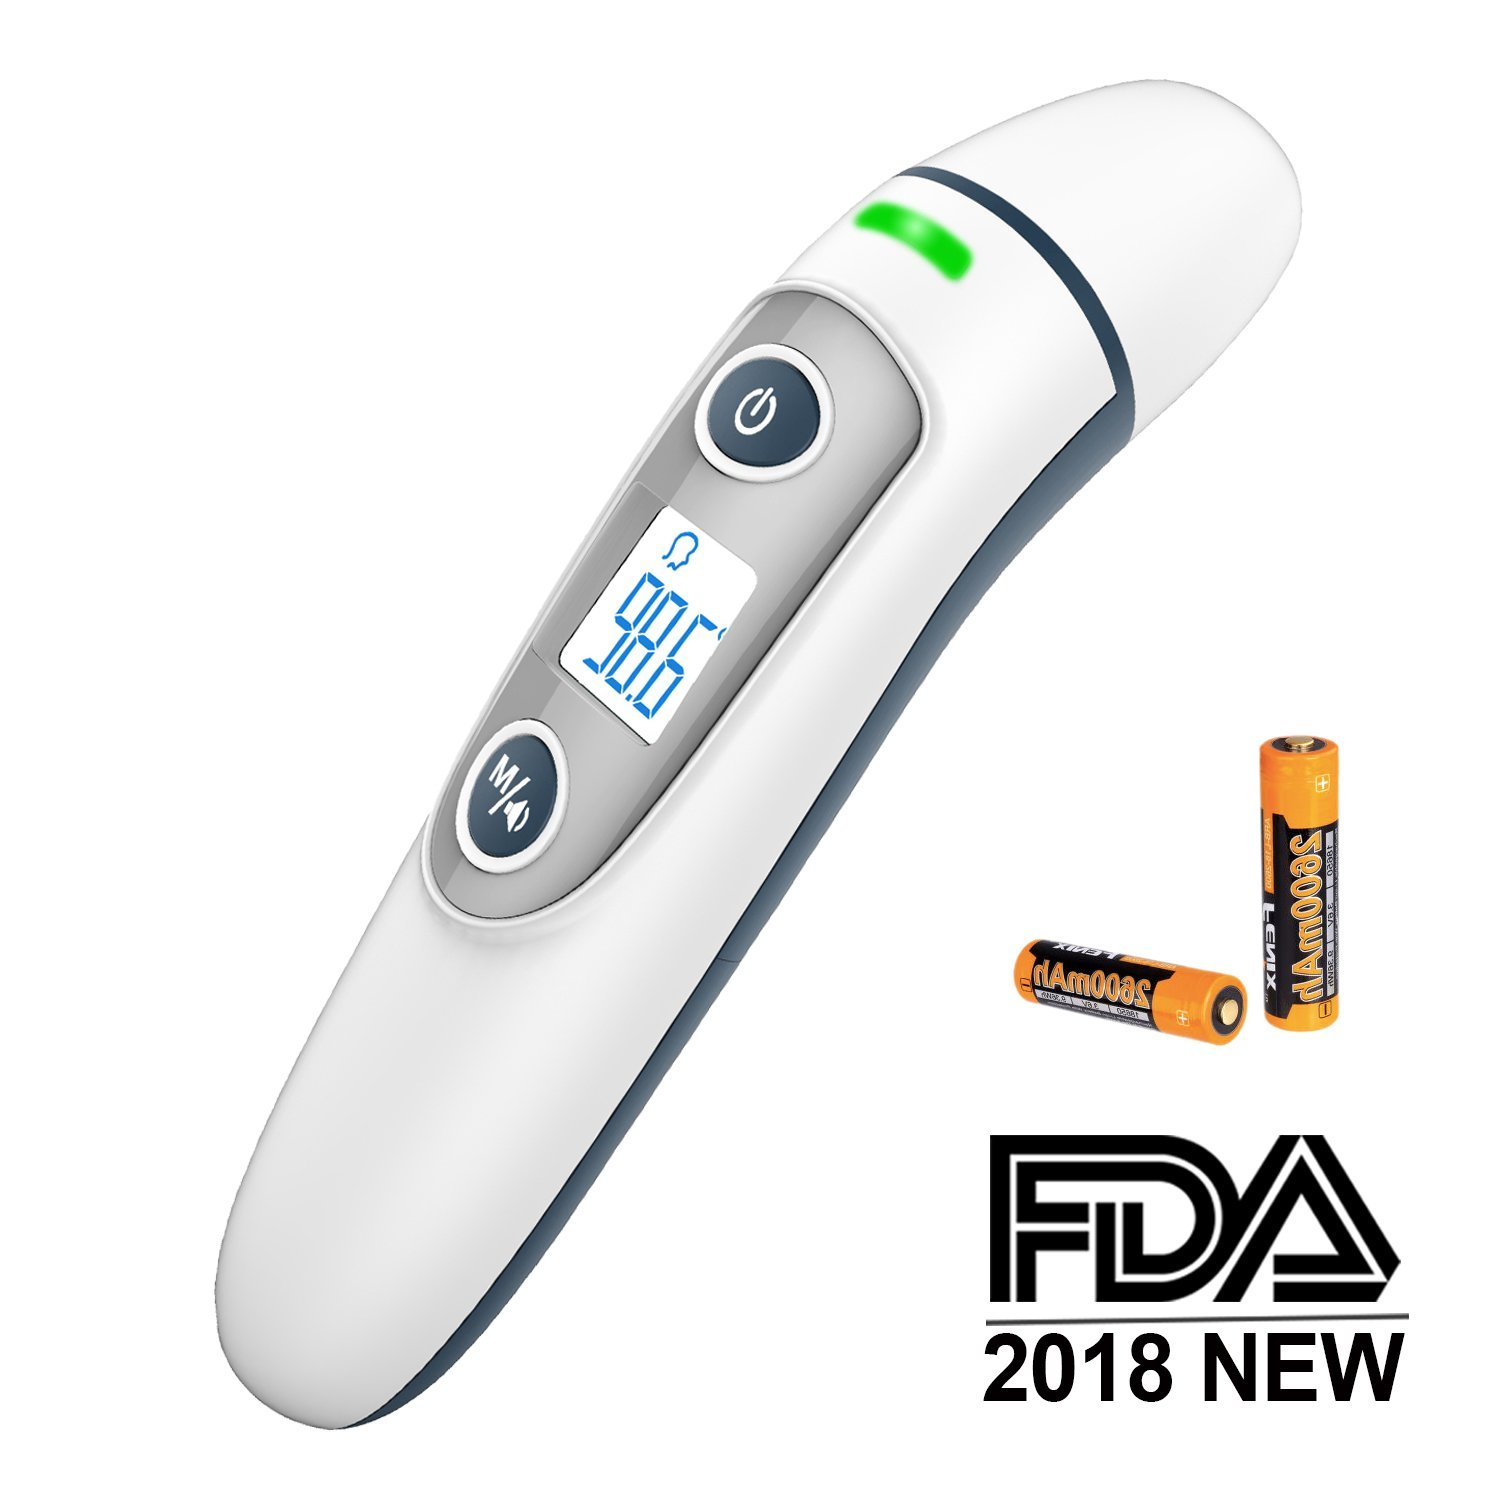 Forehead and Ear Thermometer for Baby, ULAIF Digital Medical Infrared Thermometer for Fever, Accurate Fever Indicator, Instant Read,Suitable for Infant, Adult, Object and Ambient, FDA & CE Approved